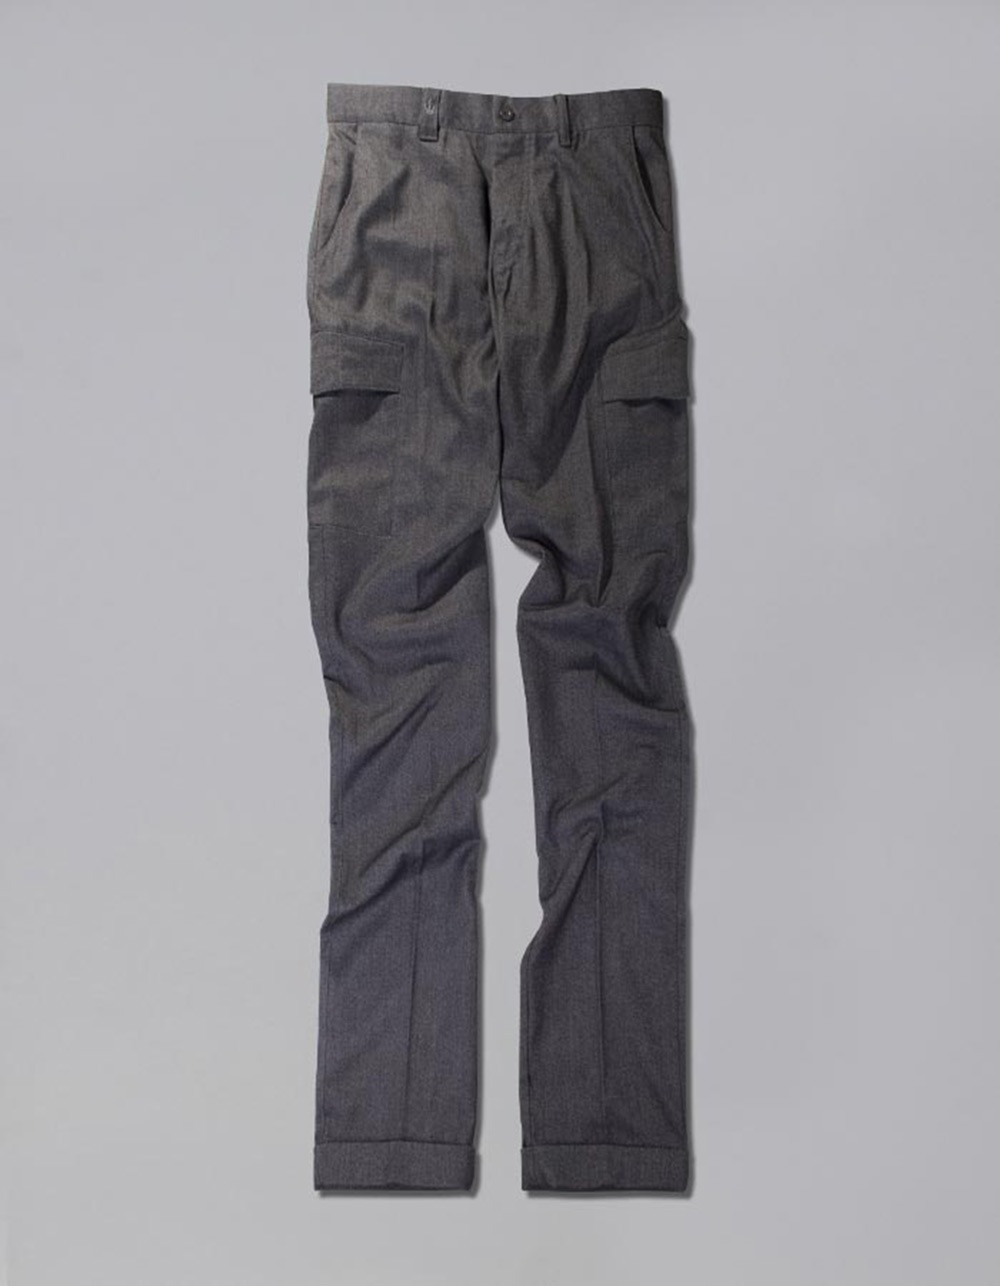 Grey cargo trousers - Backside